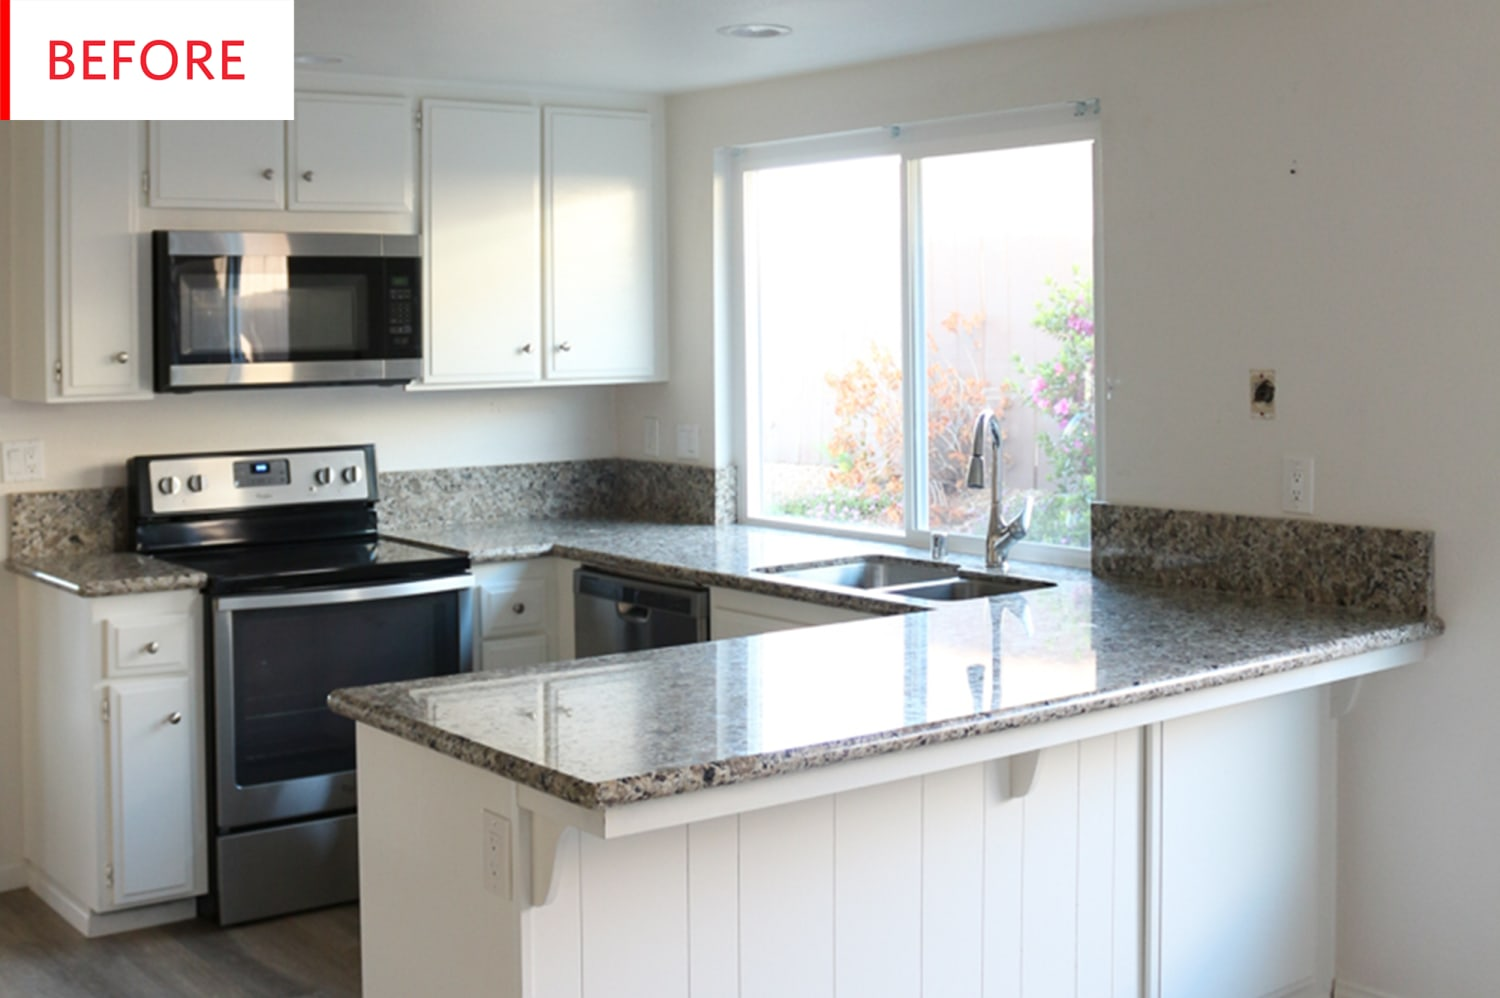 White Ikea Kitchen Shaker Cabinets Remodel Photos